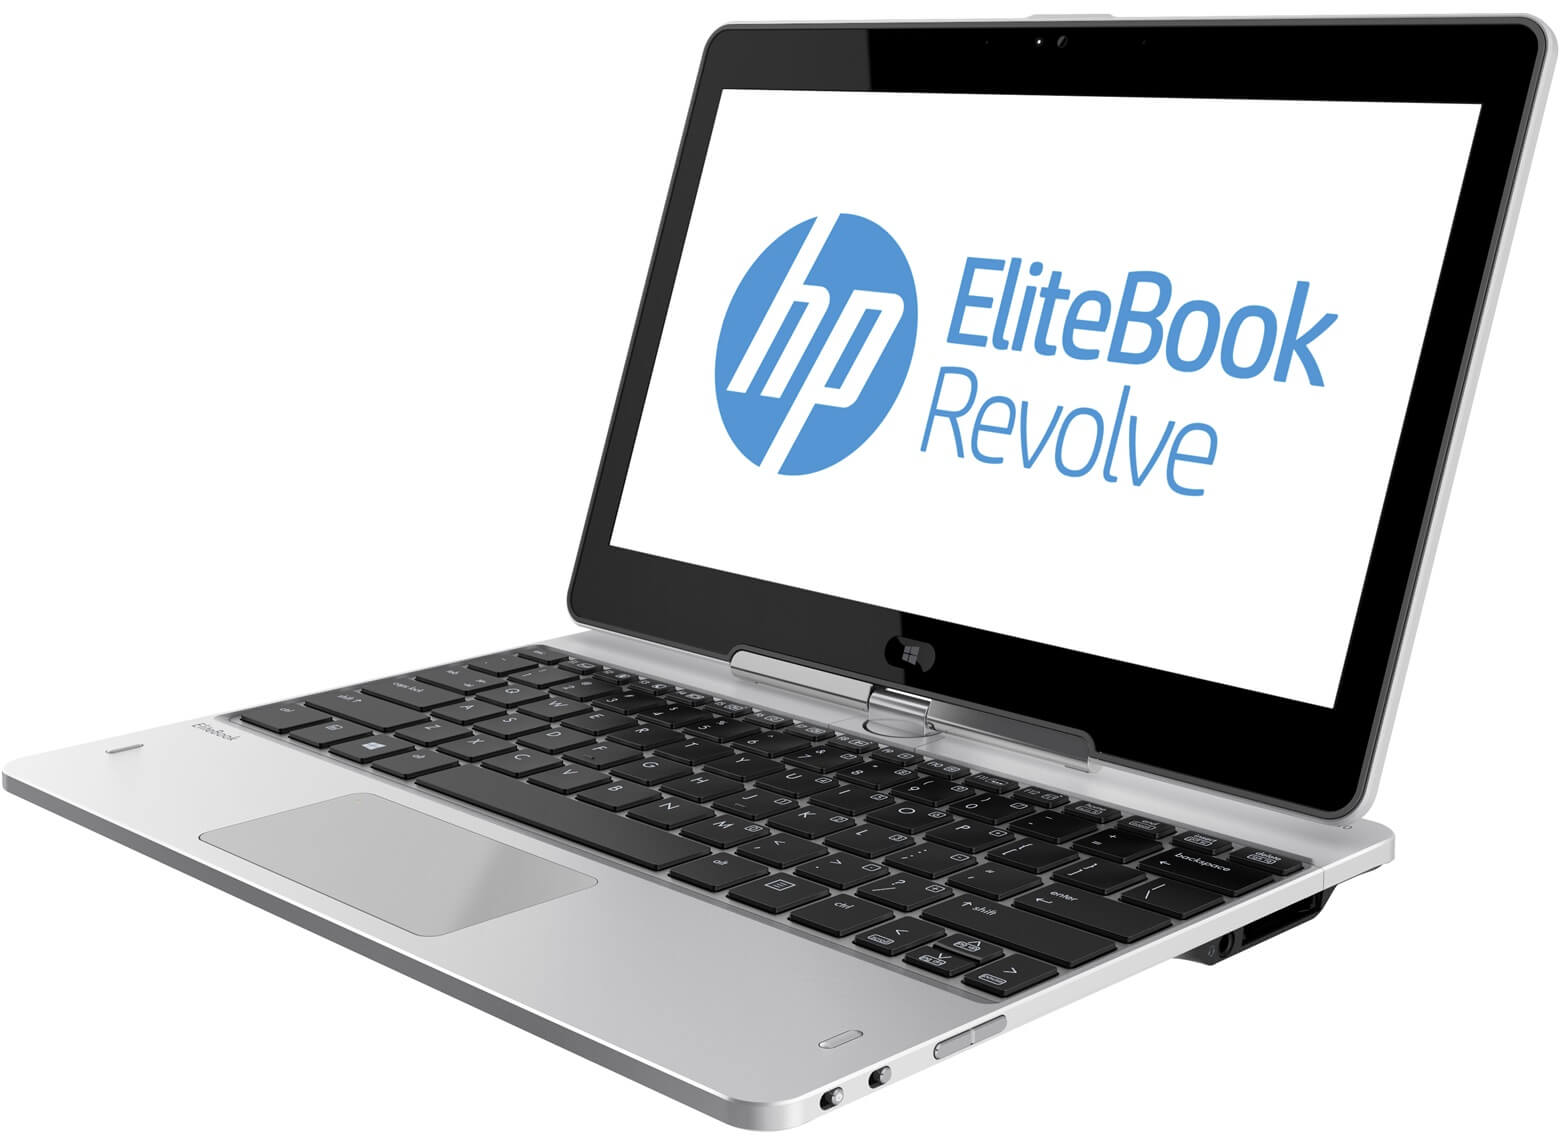 HP ELITEBOOK REVOLVE 810 G2 TABLET I5-4300U 1.9 / 8192 MB DDR3L / 256 GB SSD M.2 NOWY / SYSTEM WINDOWS 10 REFURBISHED PL / 11.6